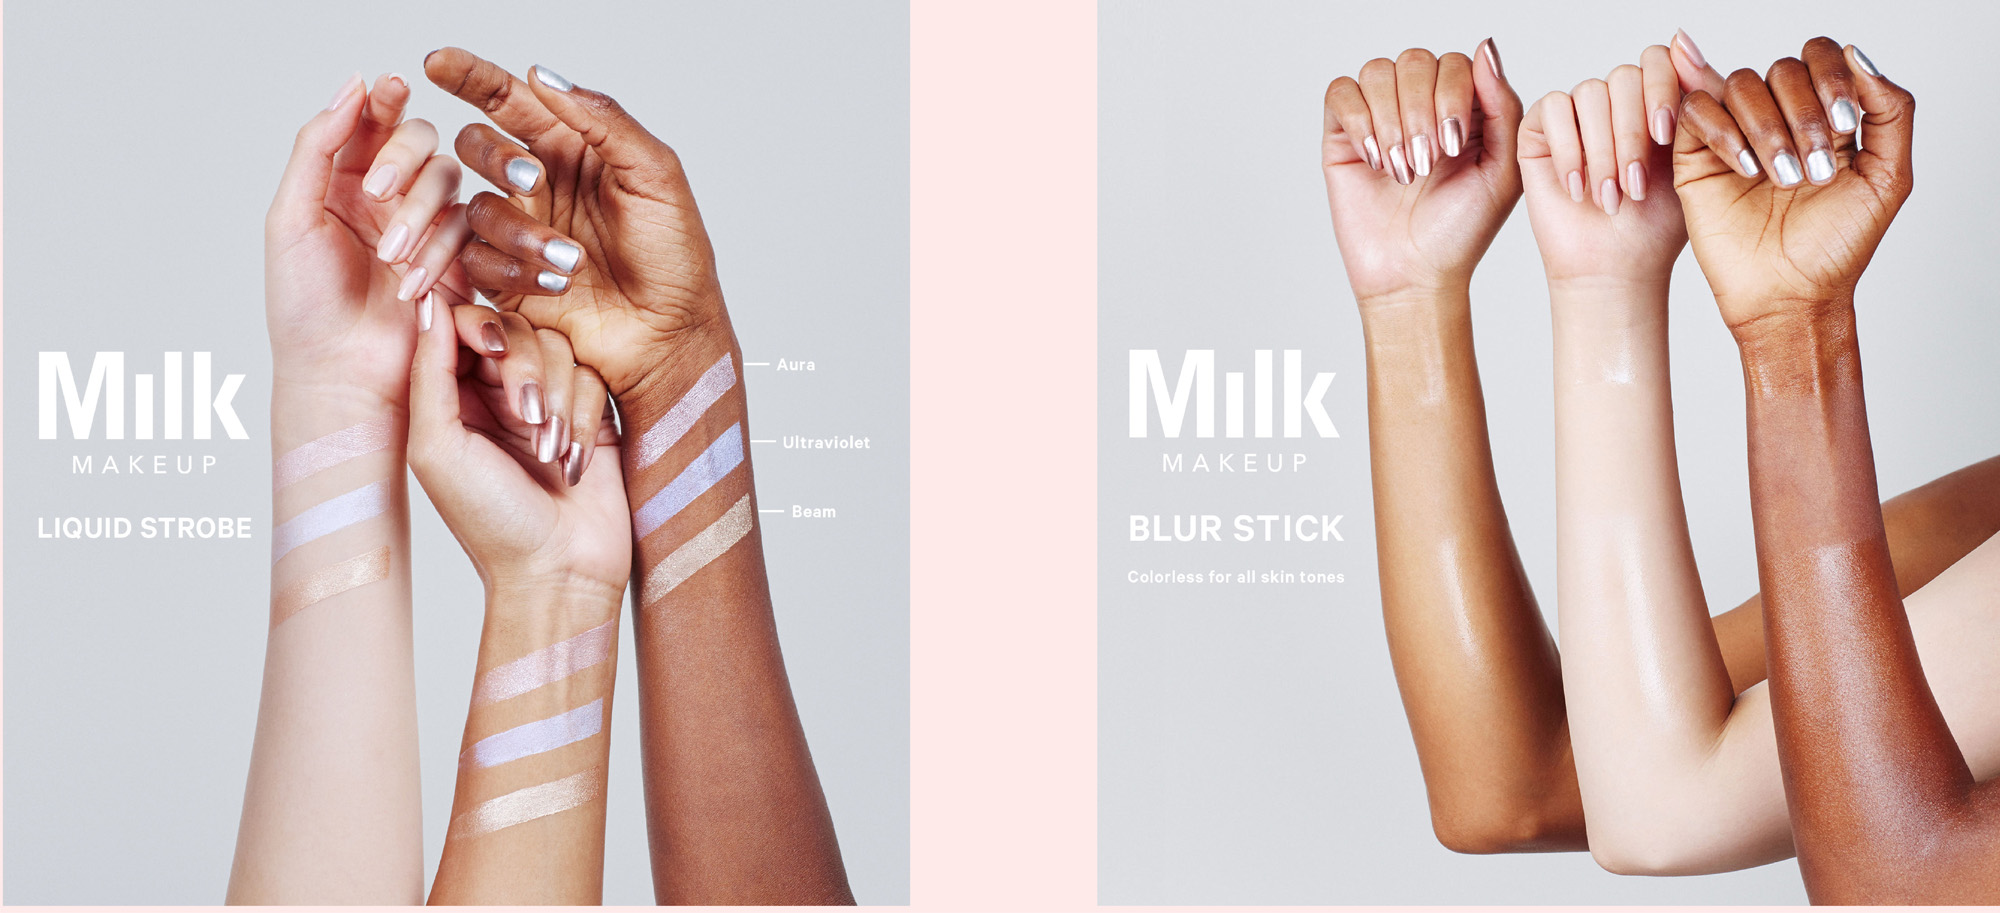 Swatch shoot S/S'17 product art direction for Sephora